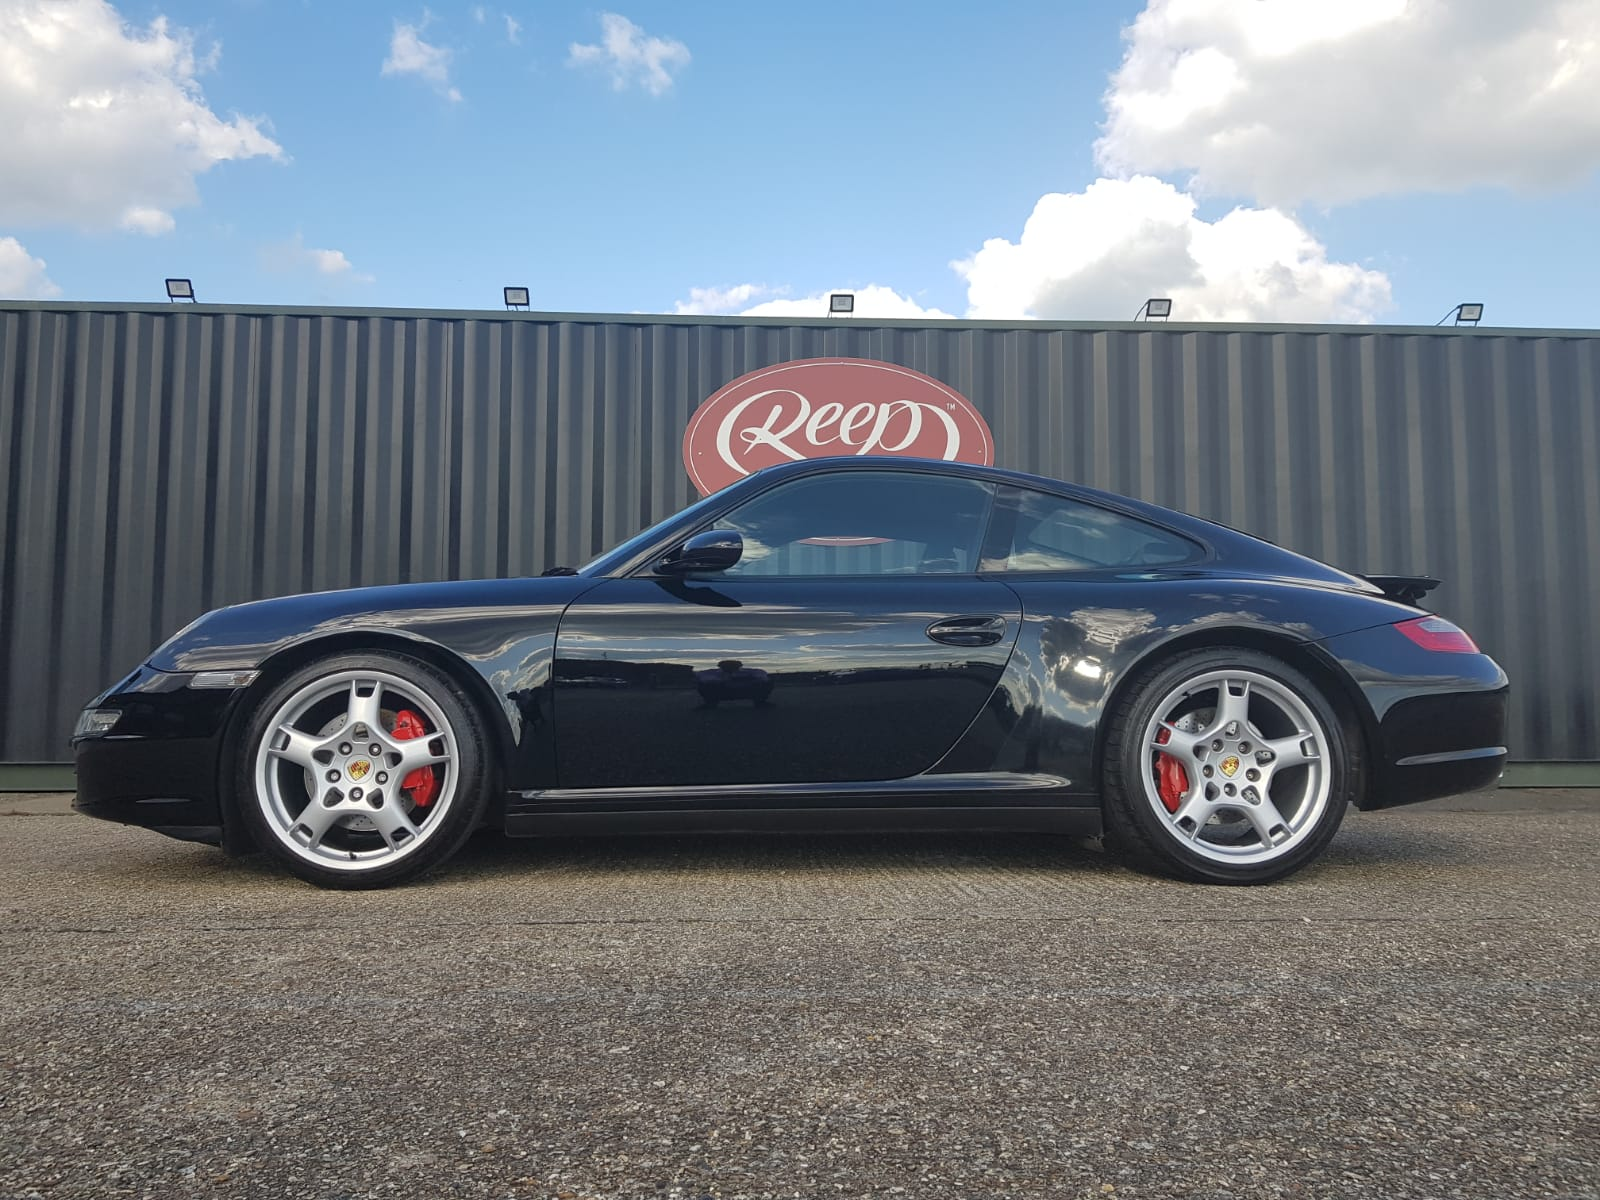 Porsche Carrera 4S Paint Re-Spray